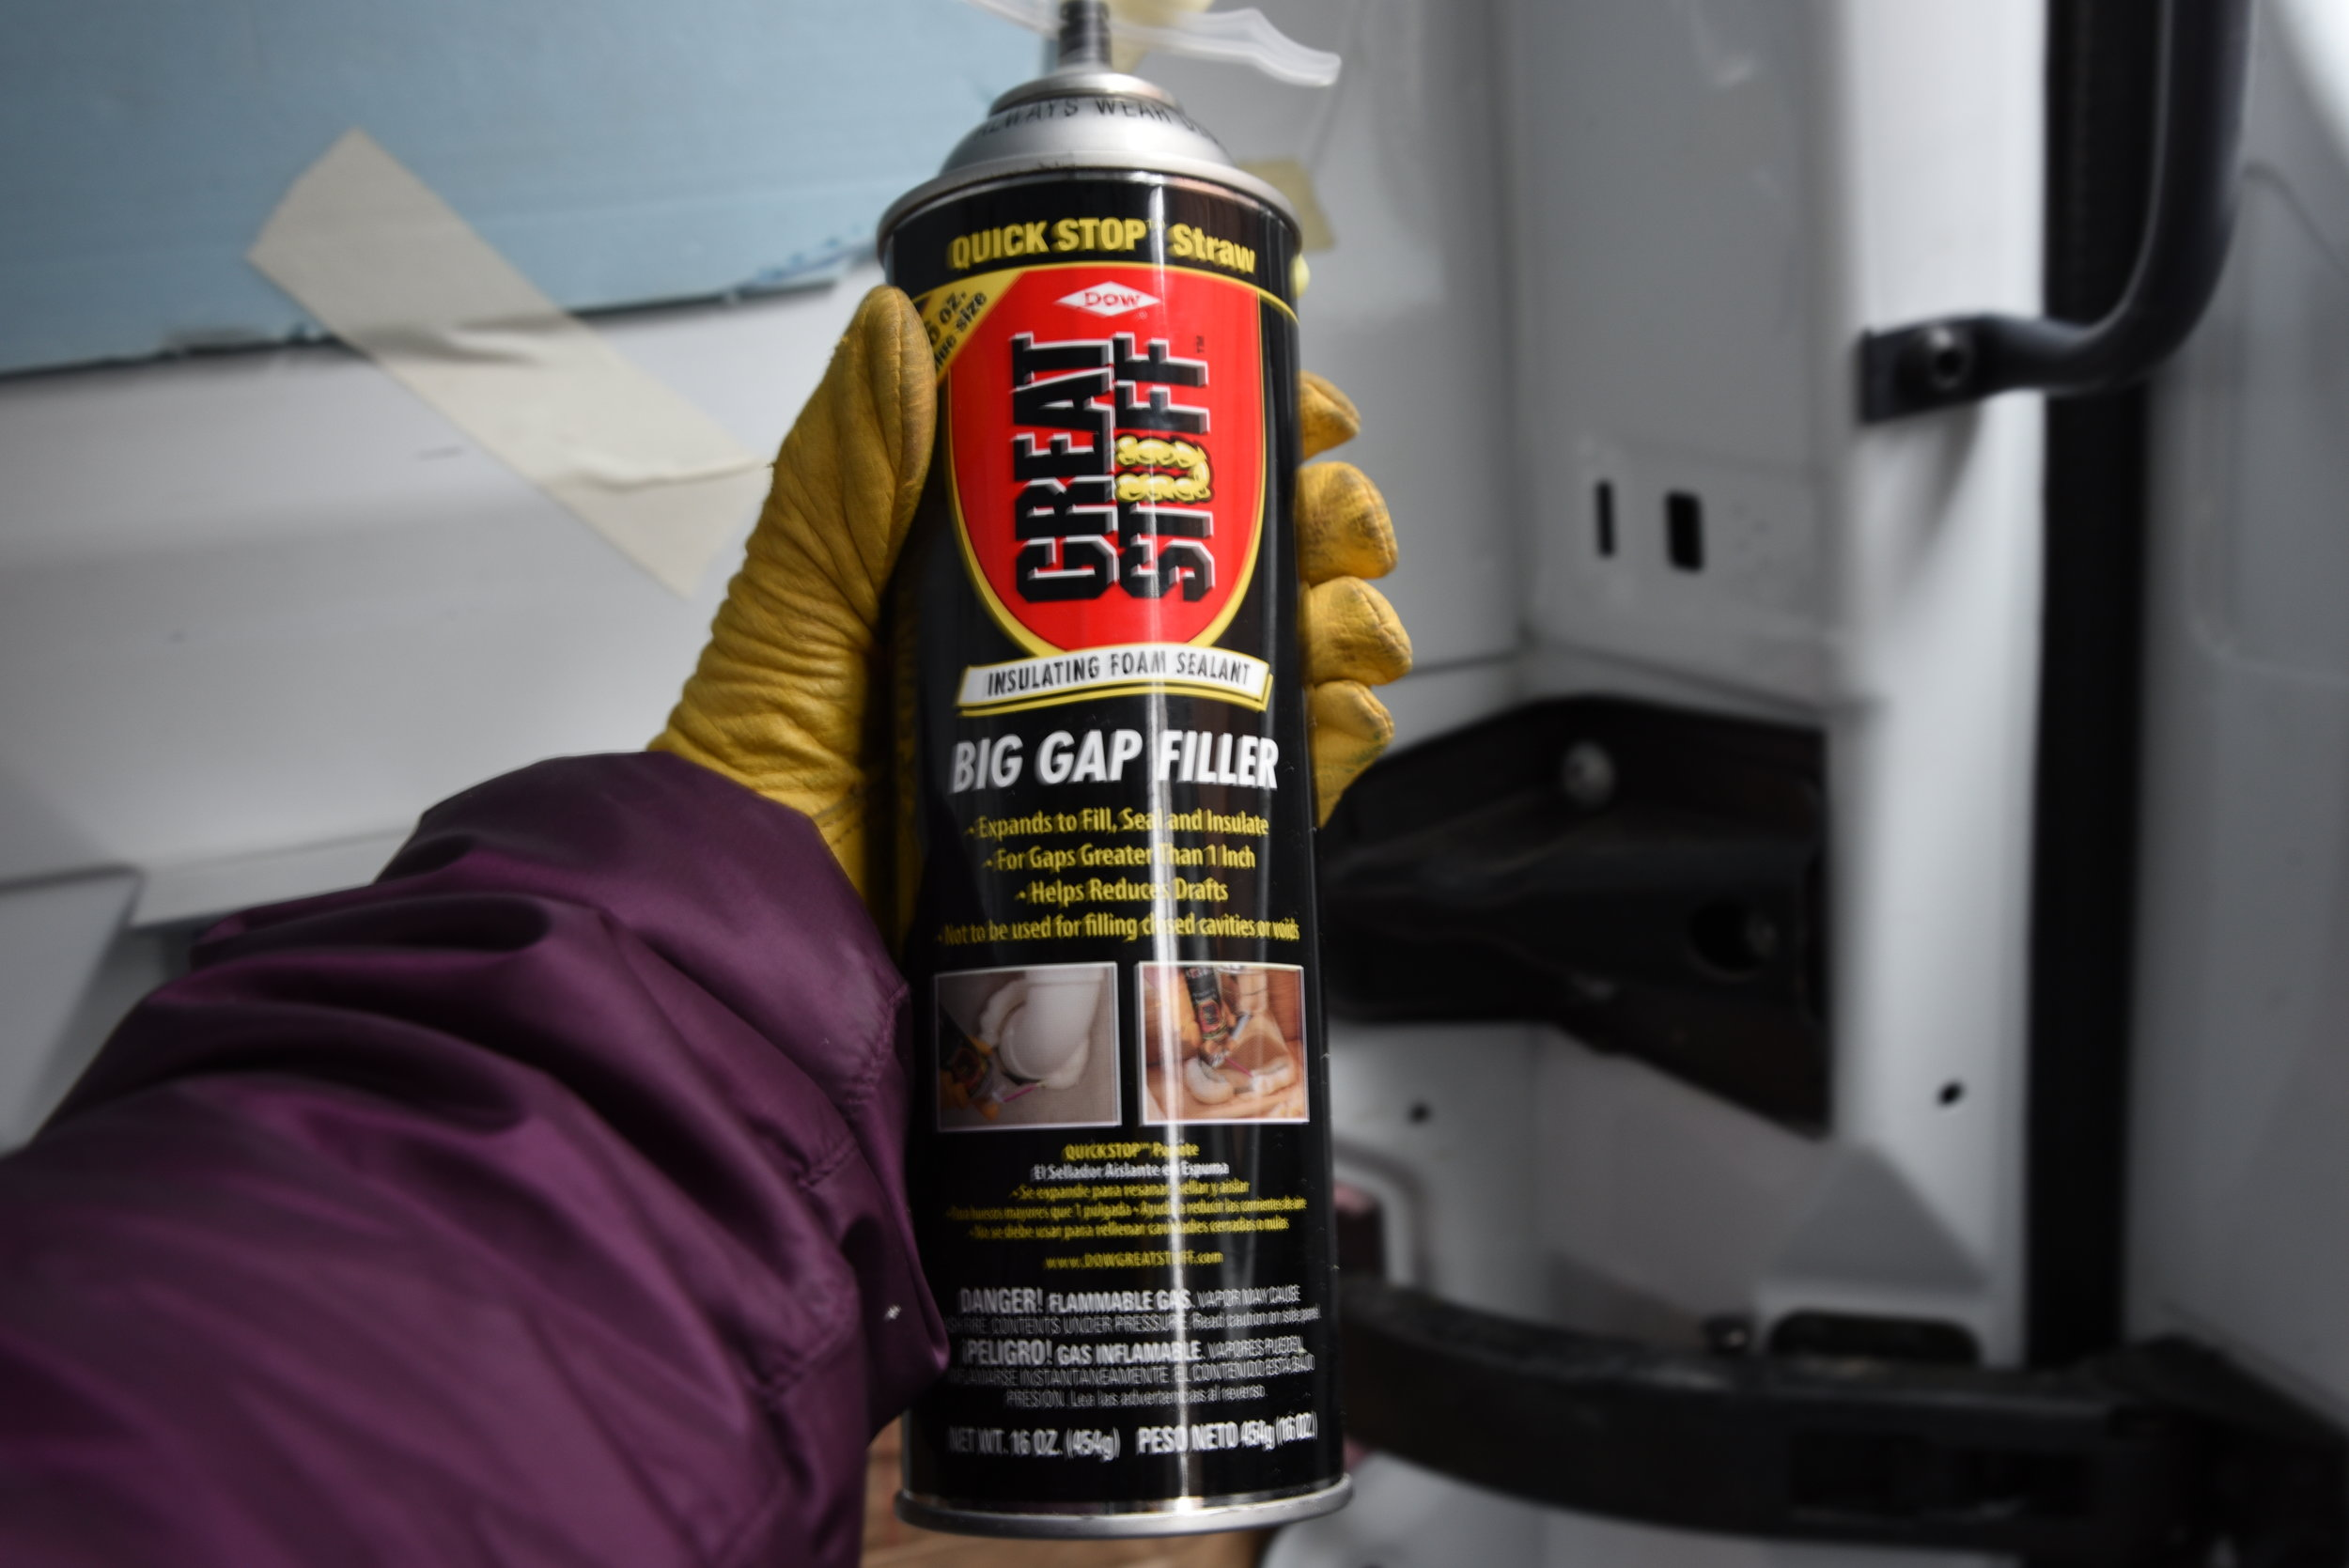 We use the Big Gap filler since the areas we were trying to fill had quite a lot of space.